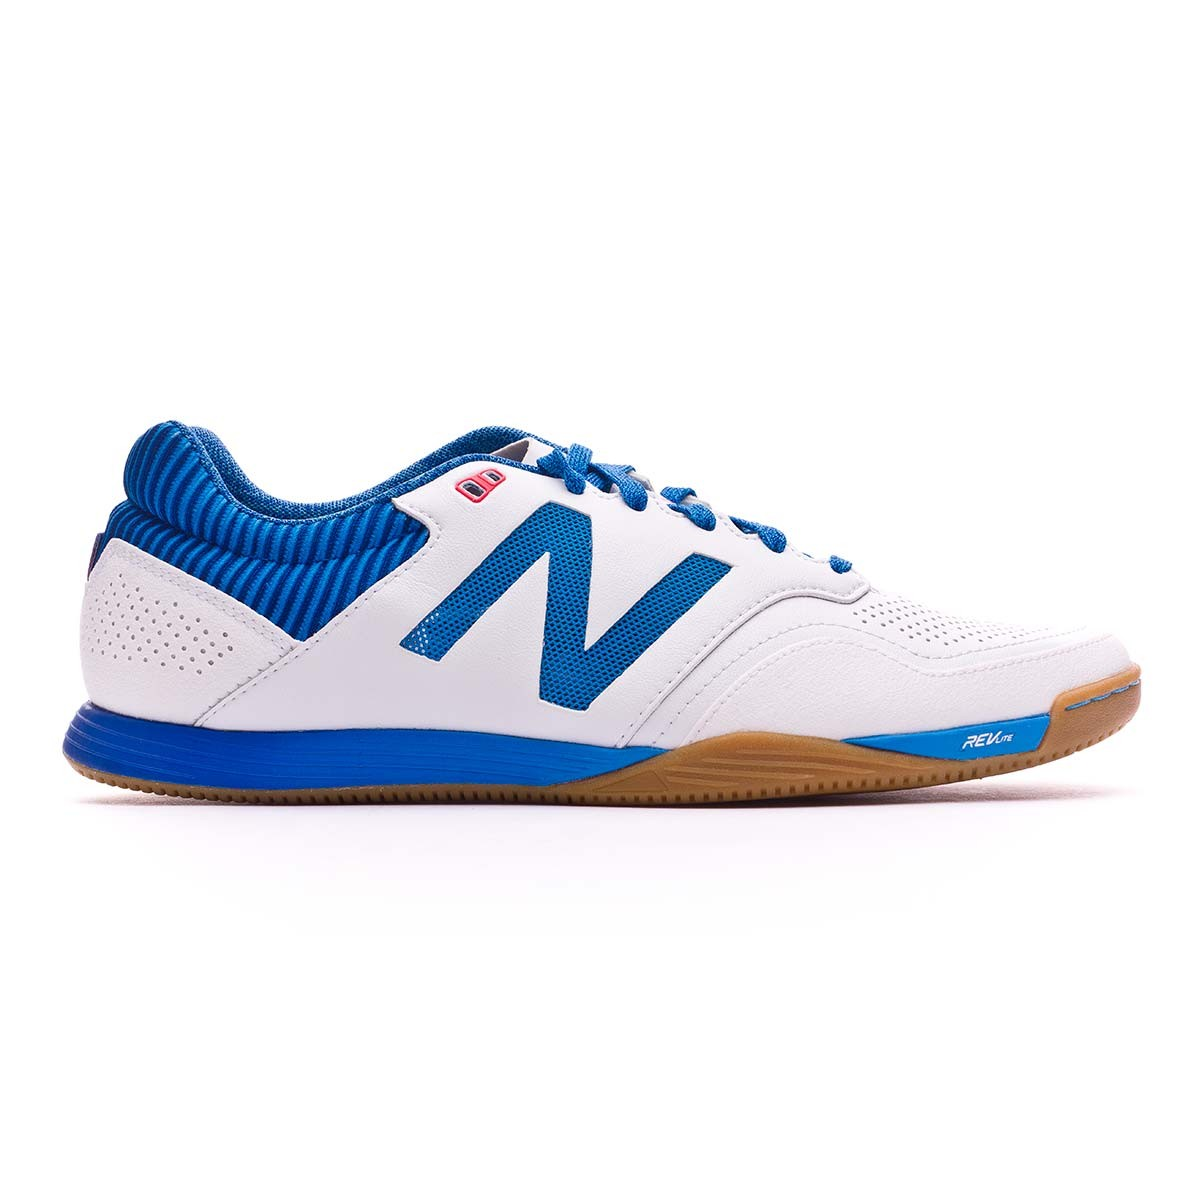 cdb2cab99 Futsal Boot New Balance Audazo 2.0 Pro Futsal White-Blue - Football store  Fútbol Emotion